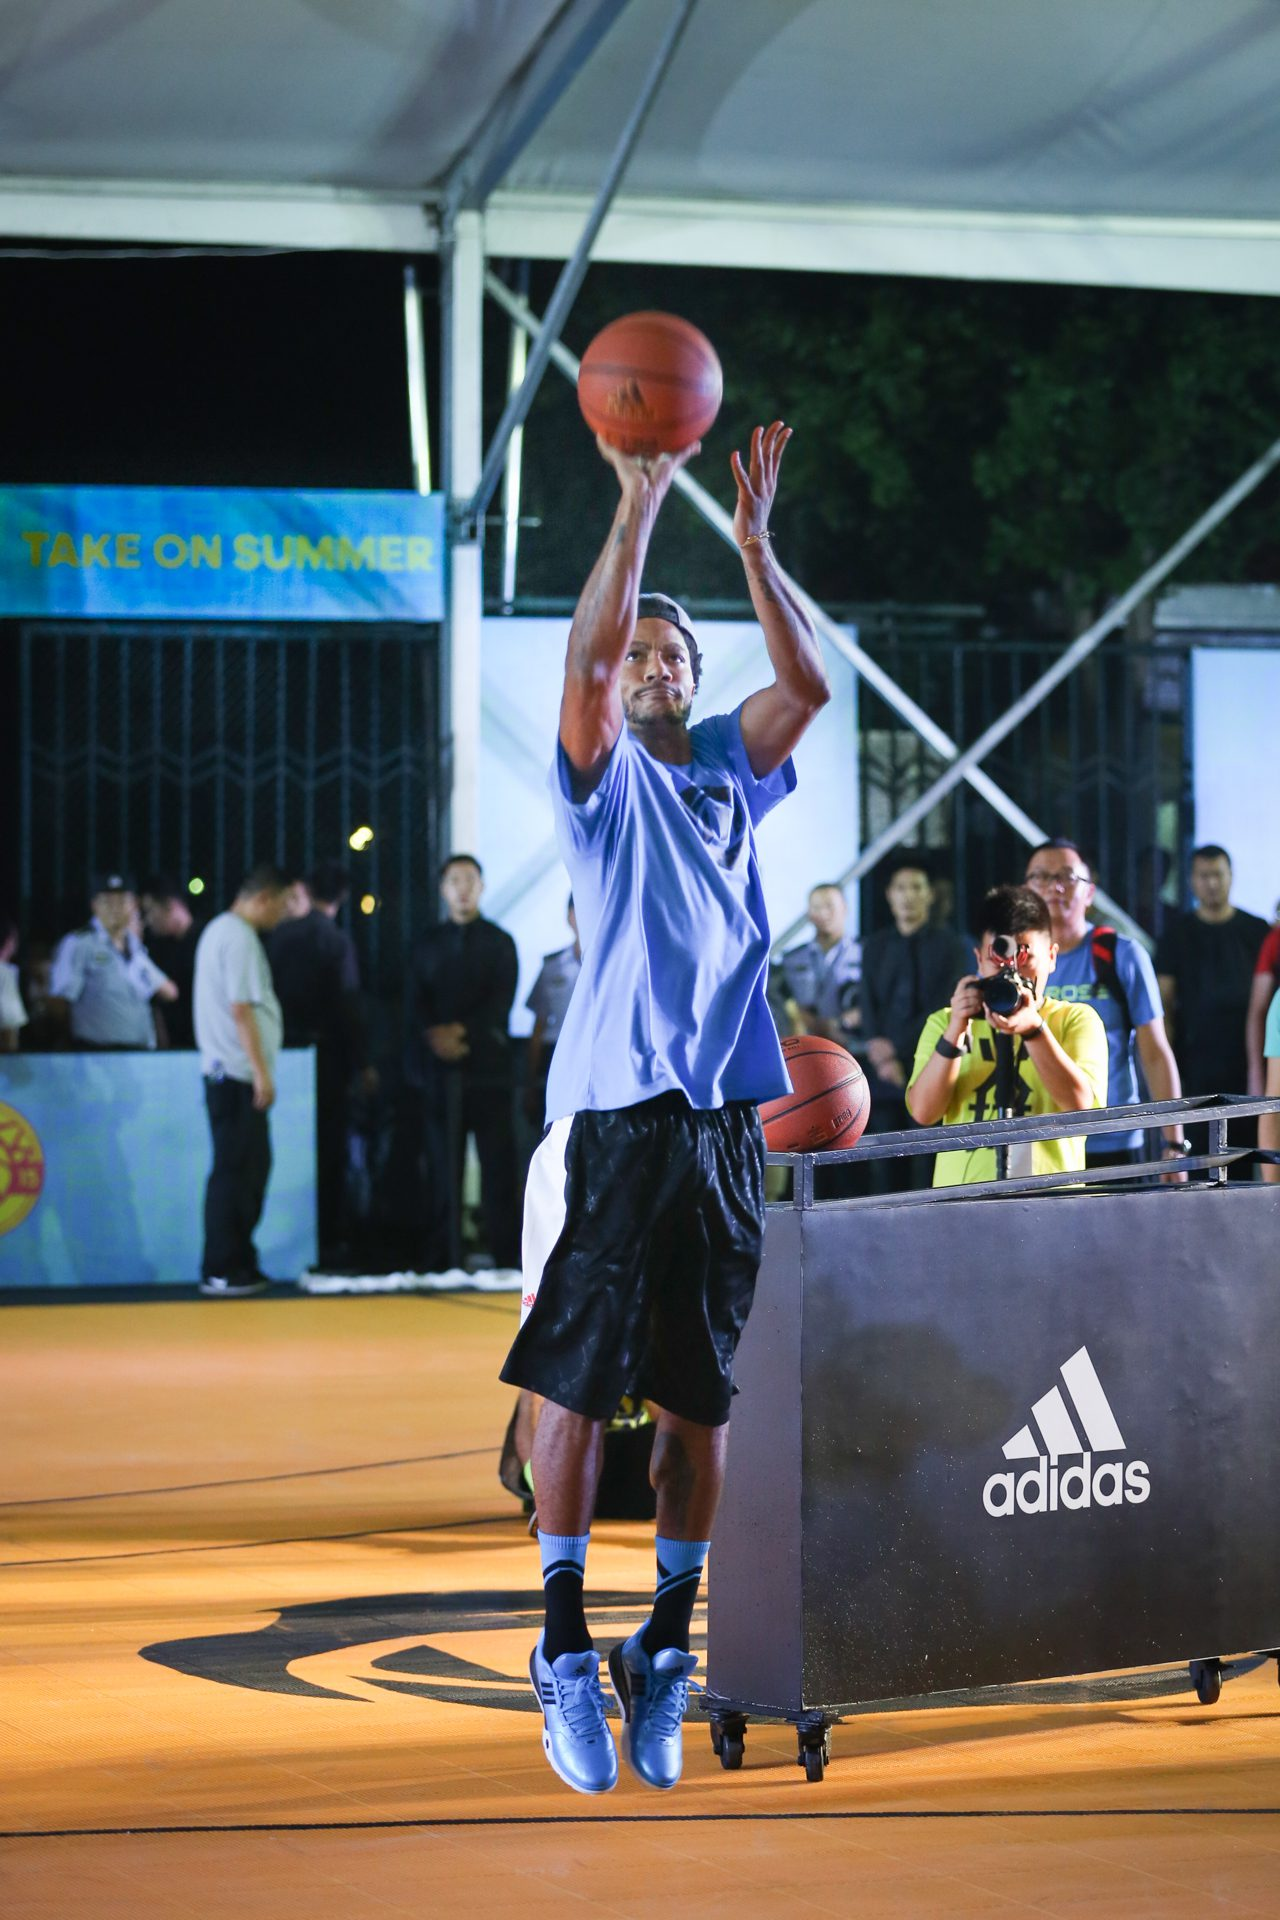 adidas Derrick Rose íºTake on Summerí¿ in Shanghai, 4